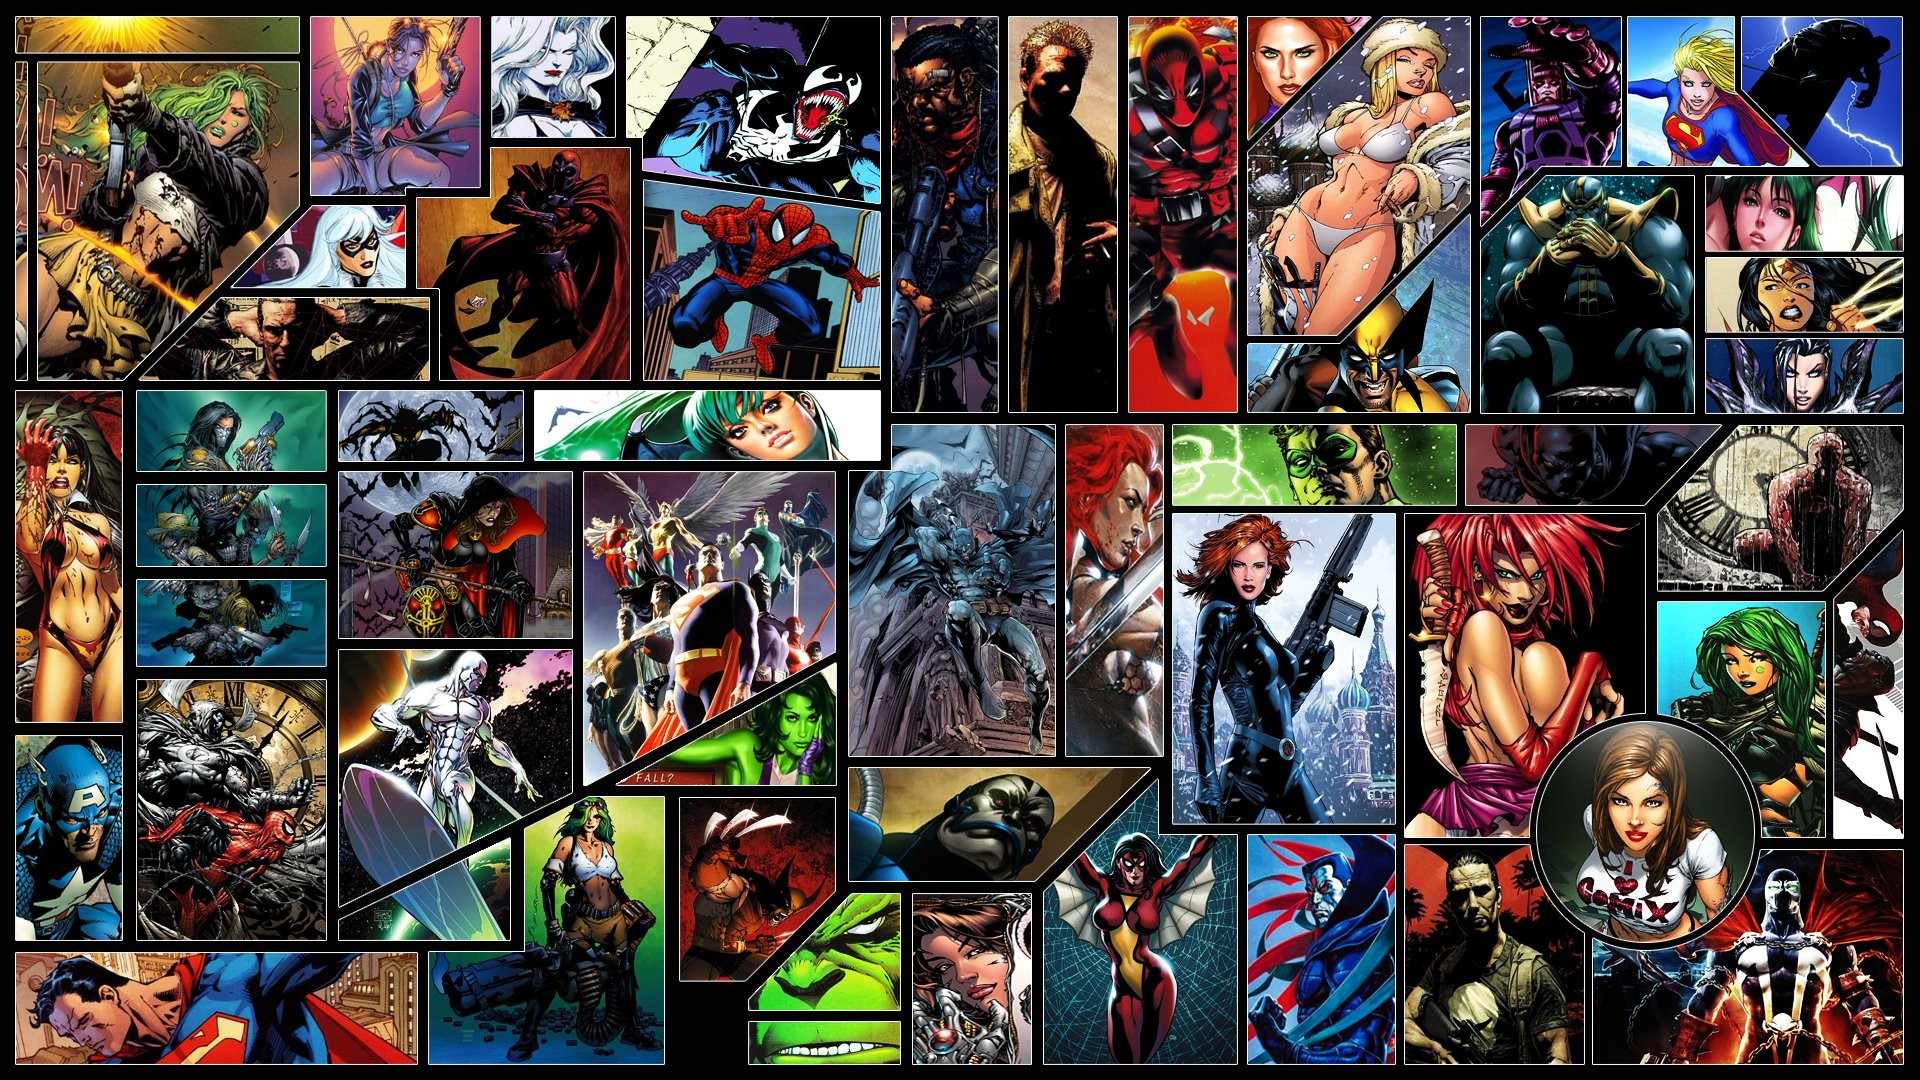 Res: 1920x1080, Comics - Marvel Comics Captain America Superman DC Comics Magneto (Marvel  Comics) Venom Spider